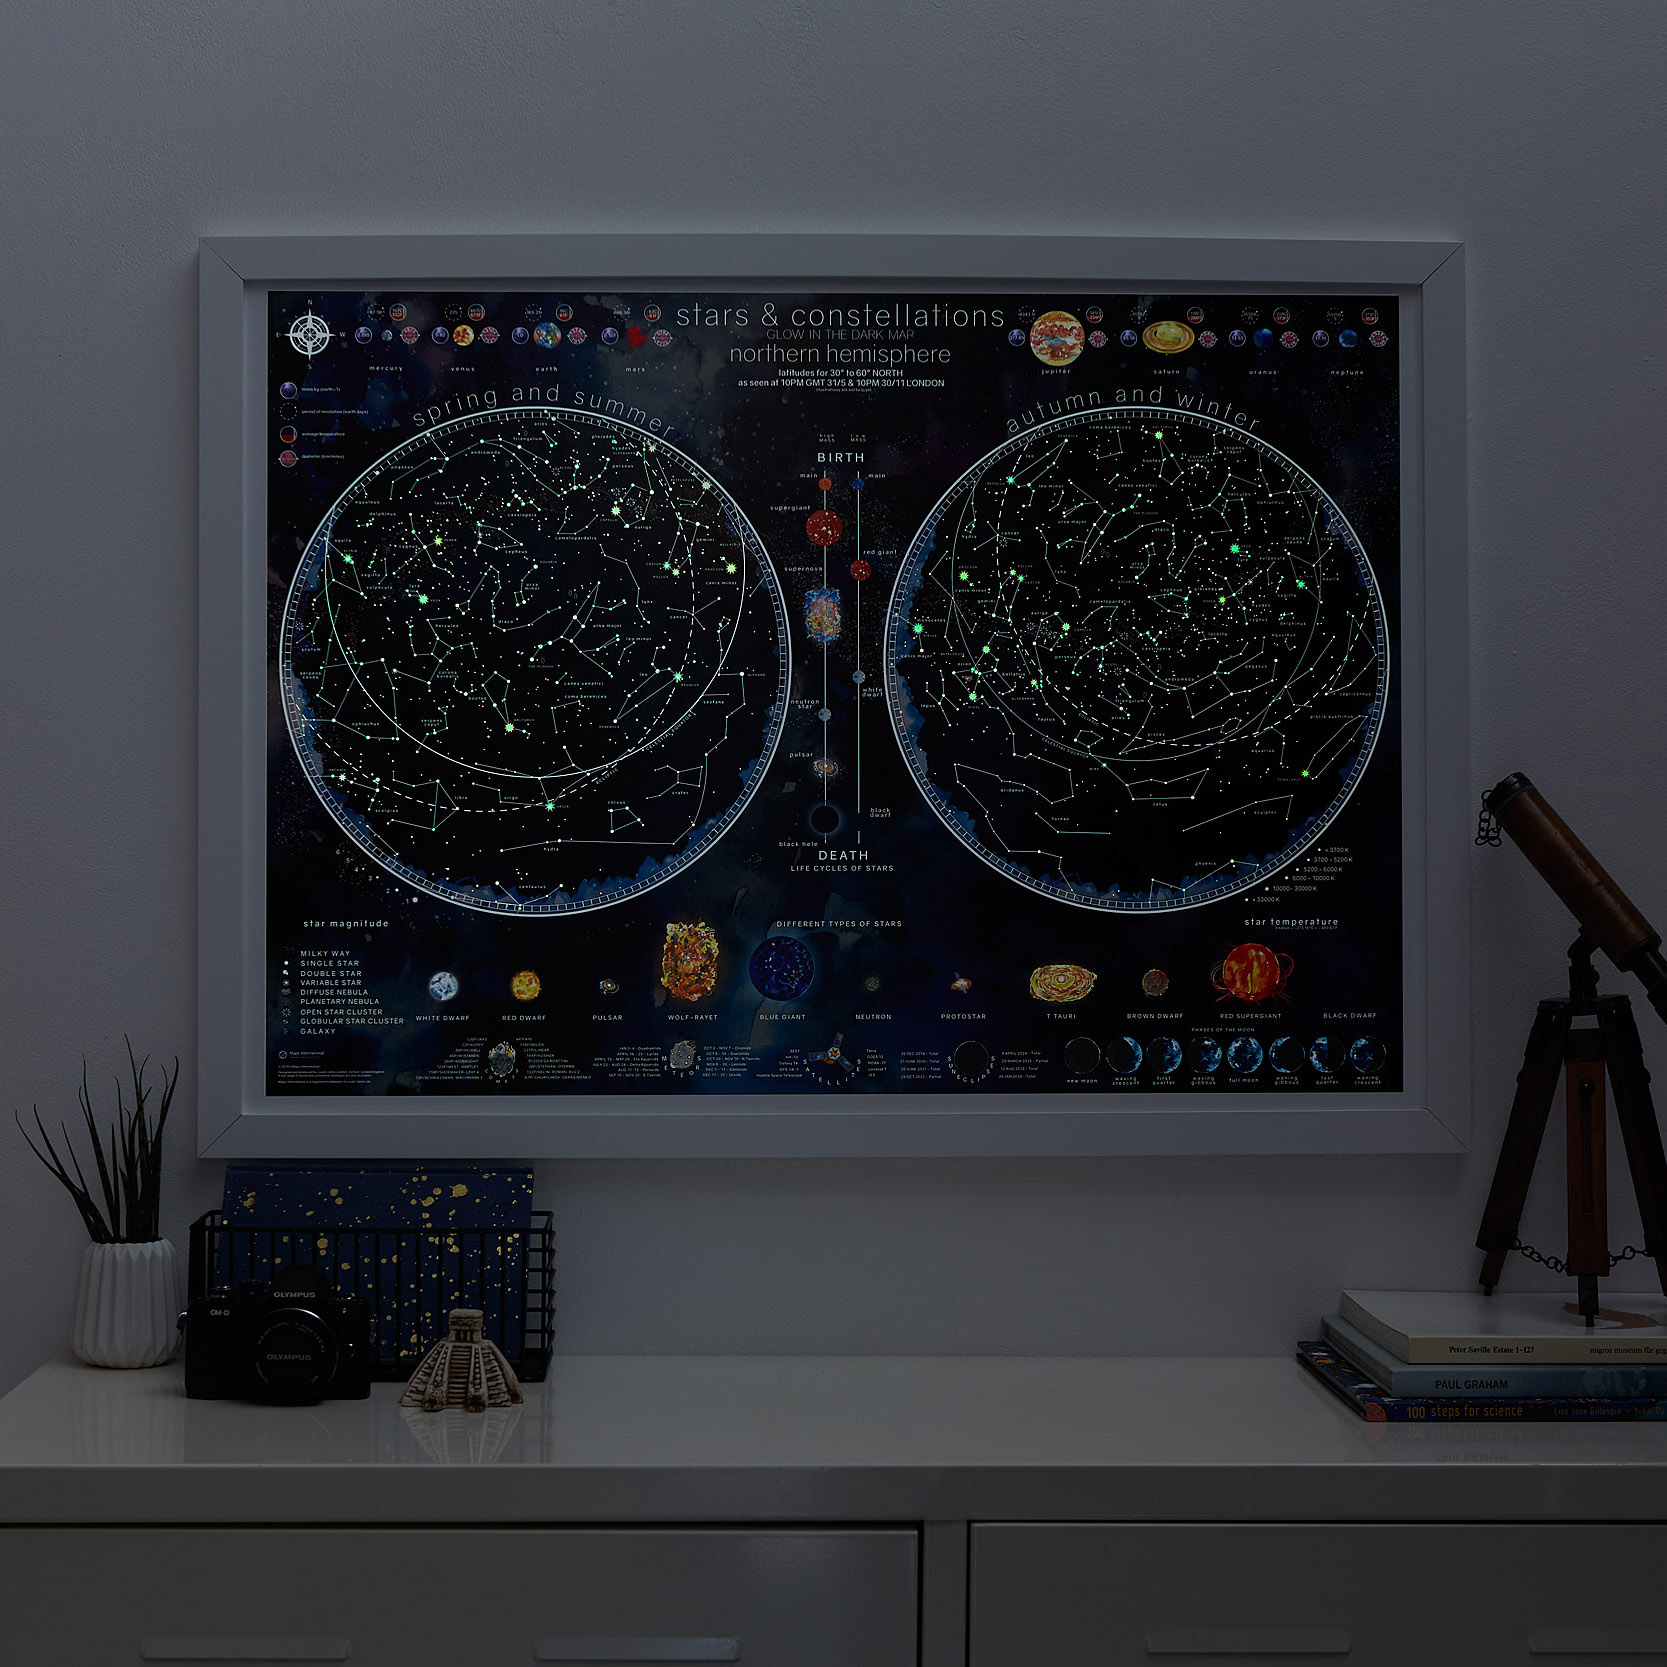 Glow in the Dark Stars and constellations_Glow